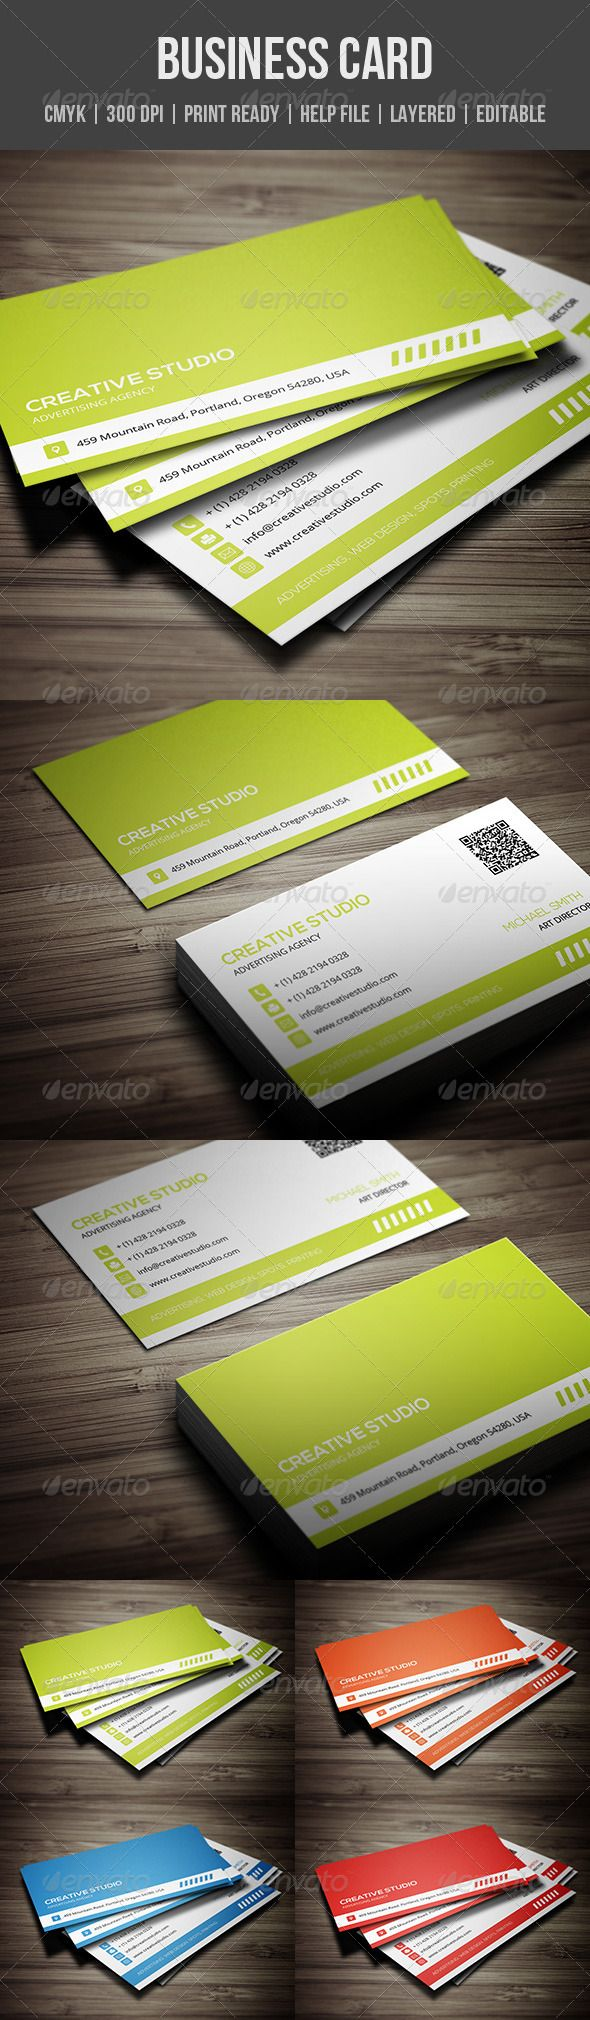 48 best cmyk images on pinterest packaging business cards and creative business card magicingreecefo Choice Image